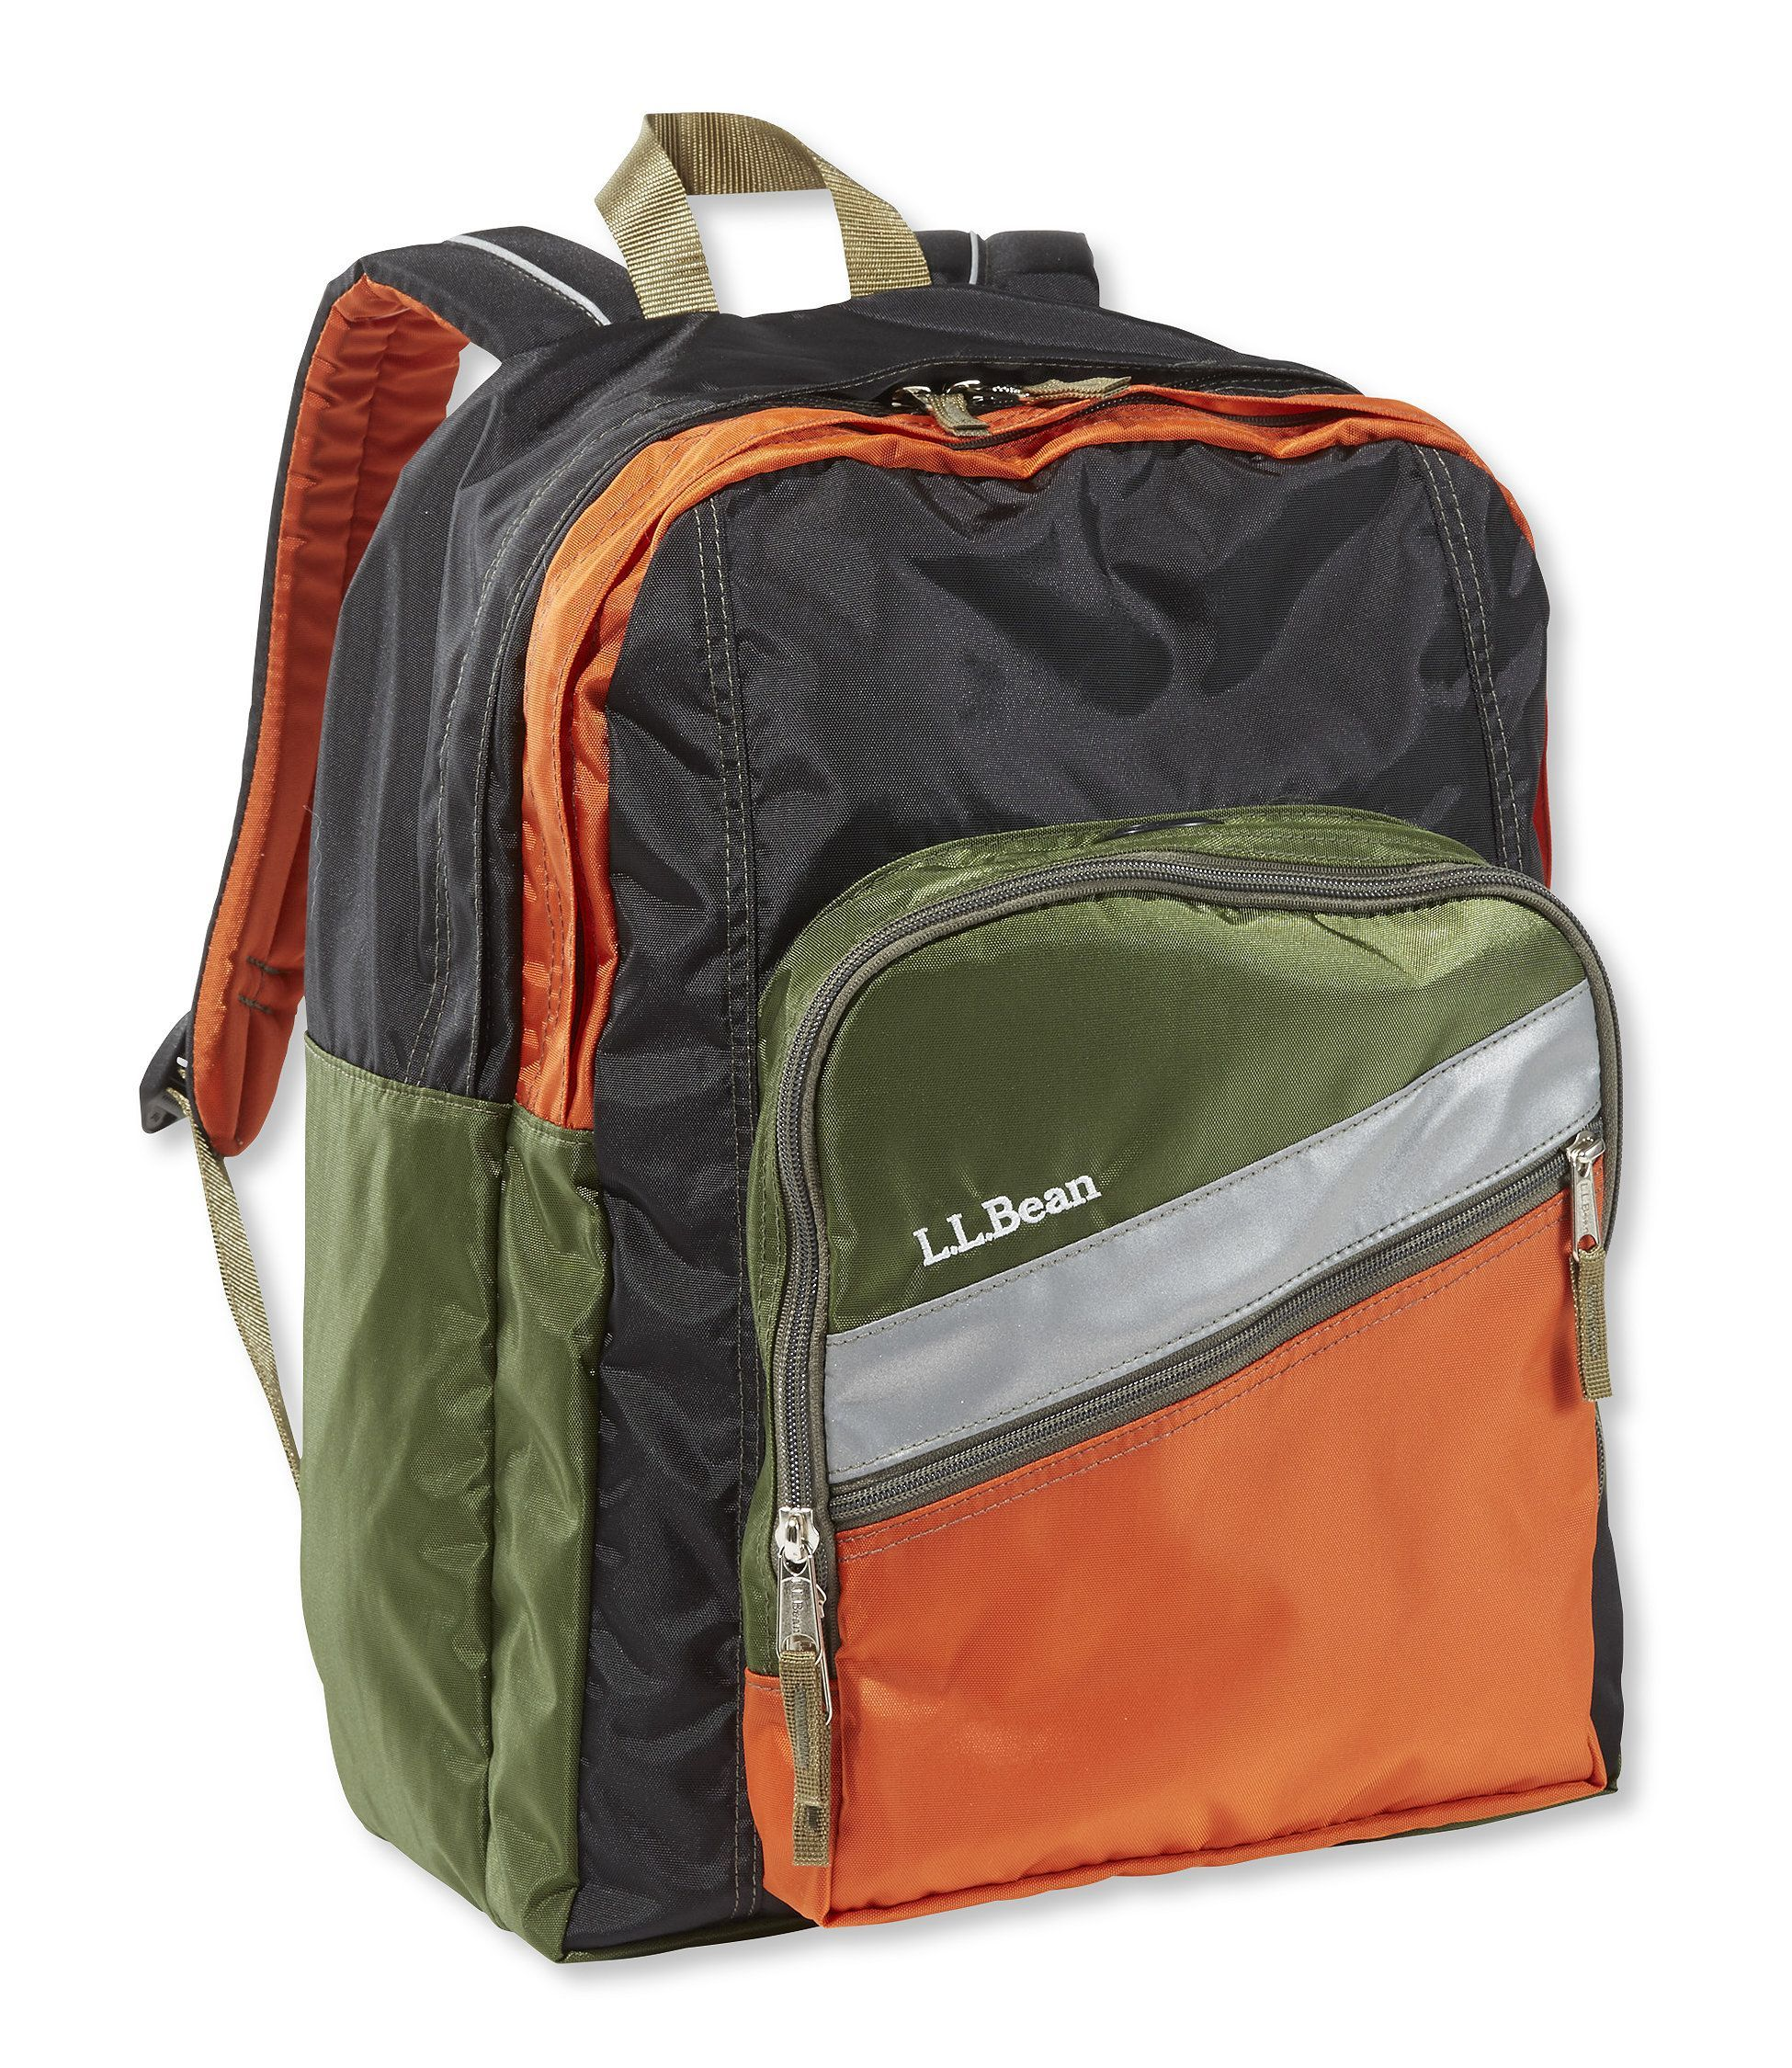 Pinterest Deluxe l L bean Backpack Products fOXOFqw